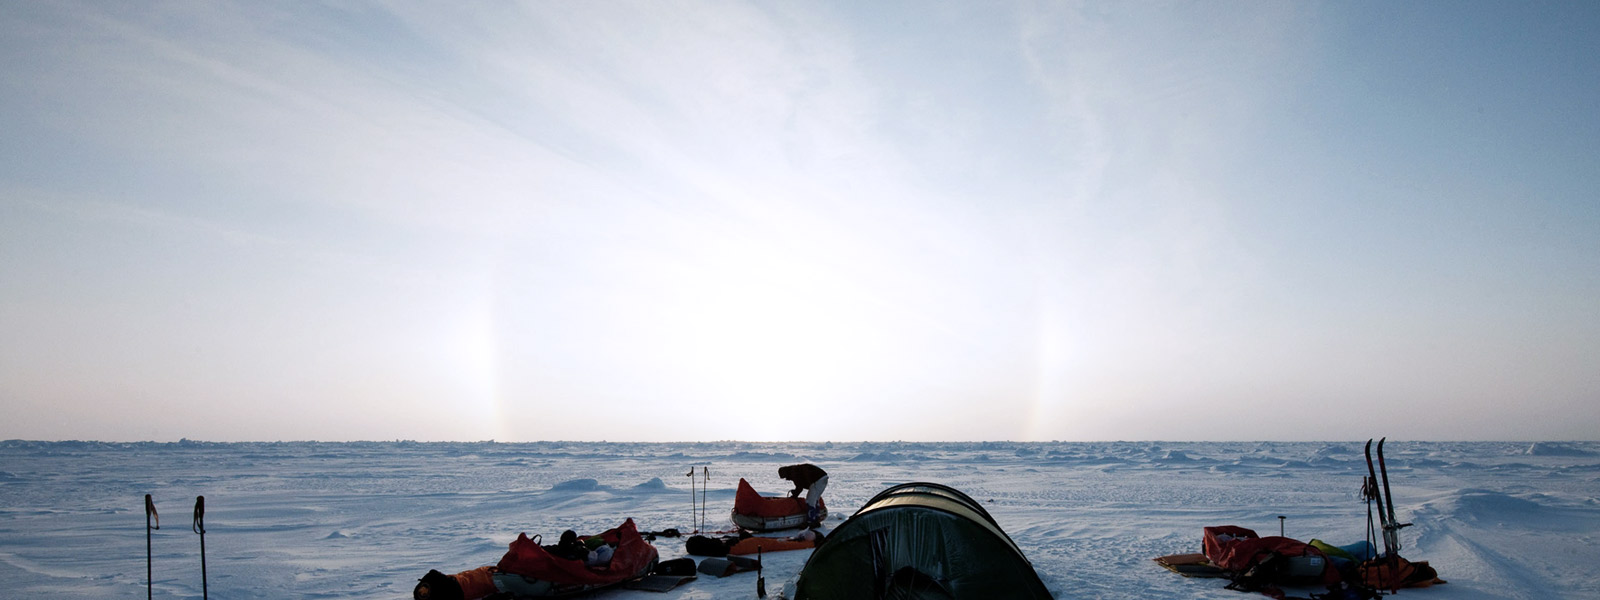 arctic landscape with arctic researchers